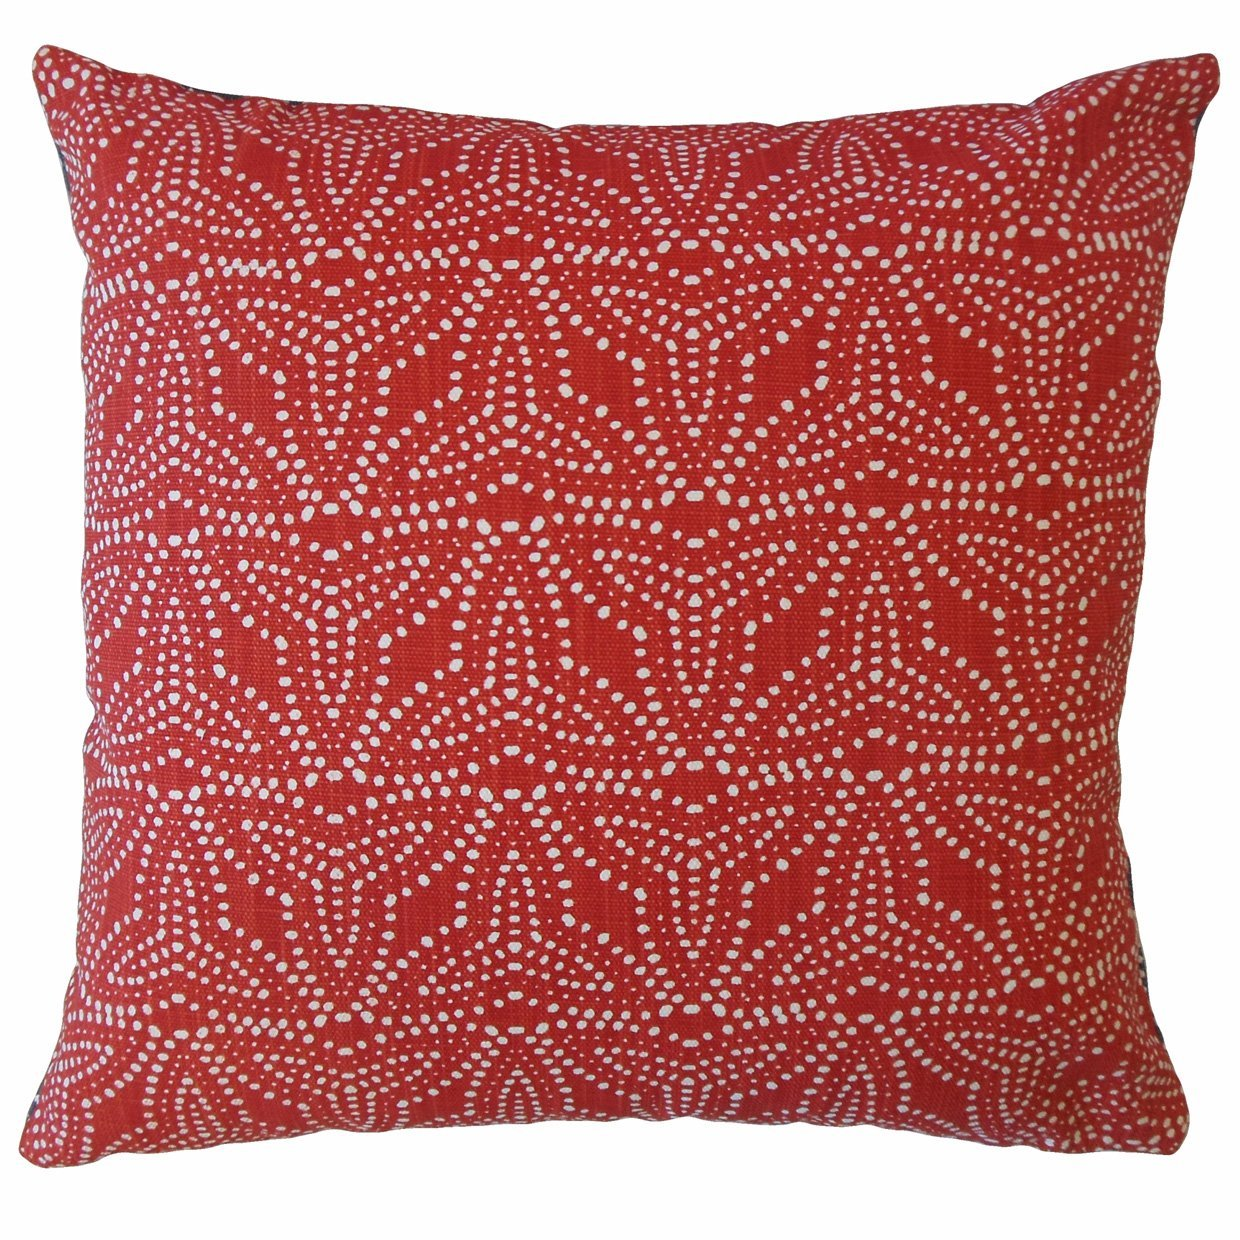 Red Cotton Geometric Contemporary Throw Pillow Cover